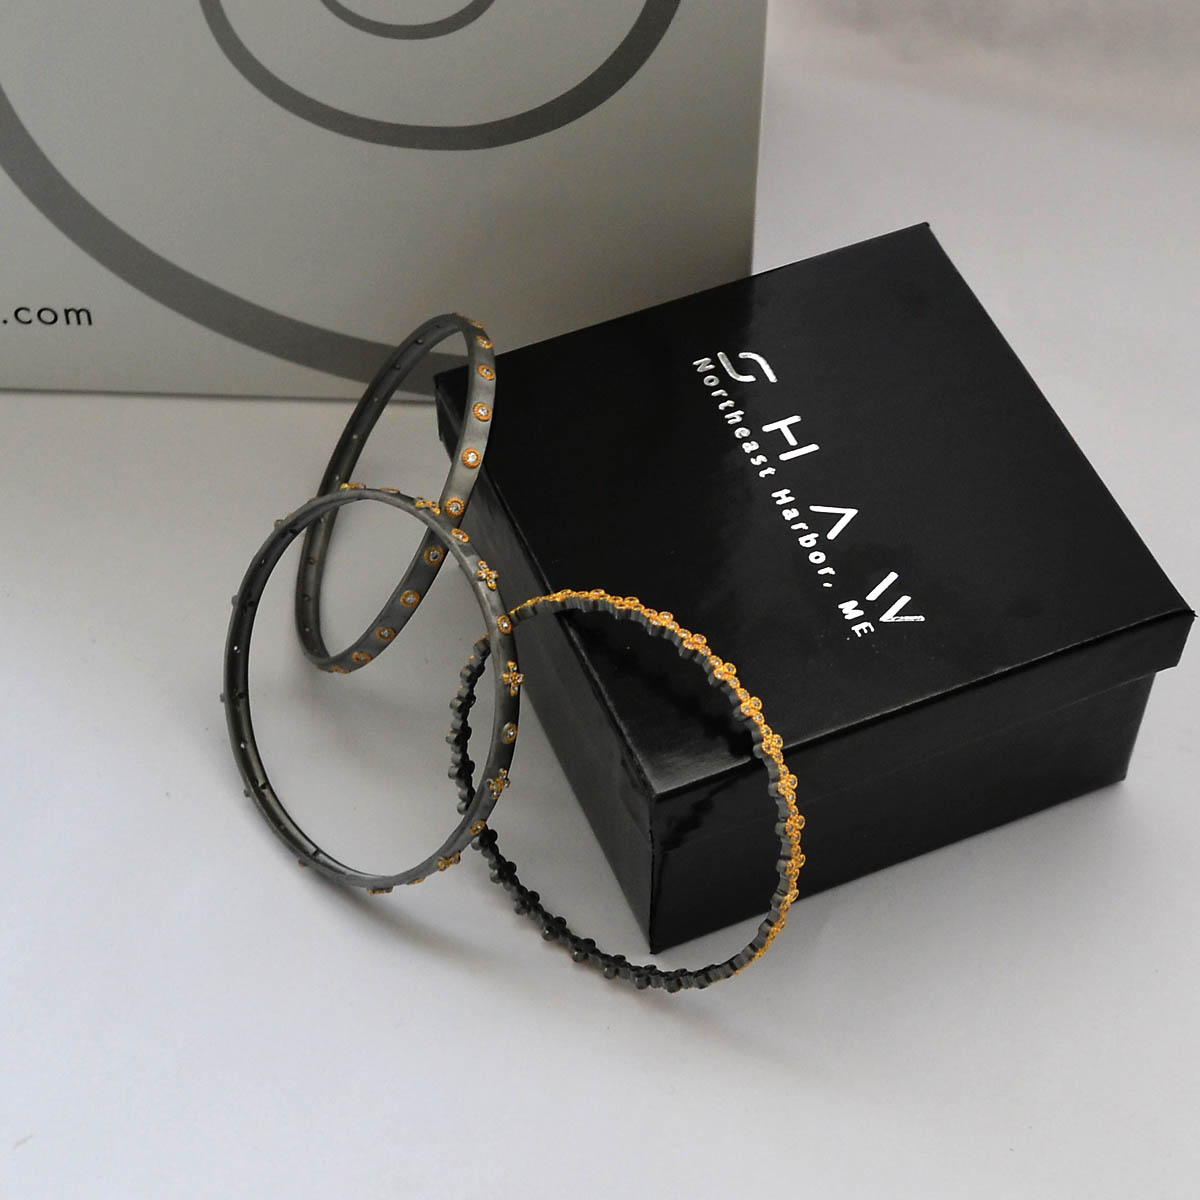 Bangle Bracelets - This fun set of three oxidized bangle bracelets generously provided by Shaw Jewelry feature cubic zirconium embellishments to add a little sparkle. A unique way to add some understated pizzaz to your outfit.Retail Value: $395.00